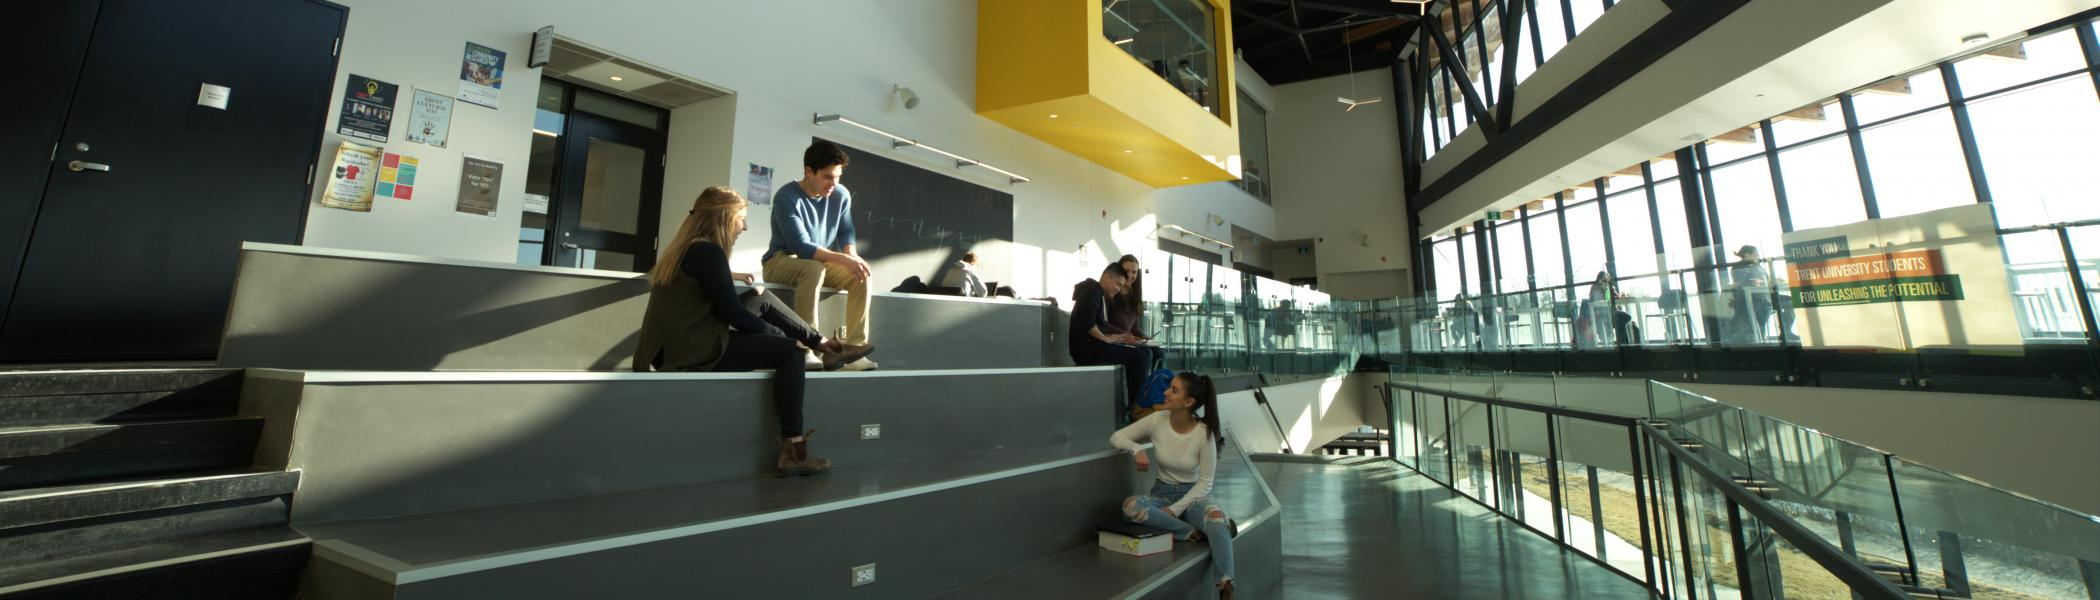 Students sitting talking and laughing in Student Centre